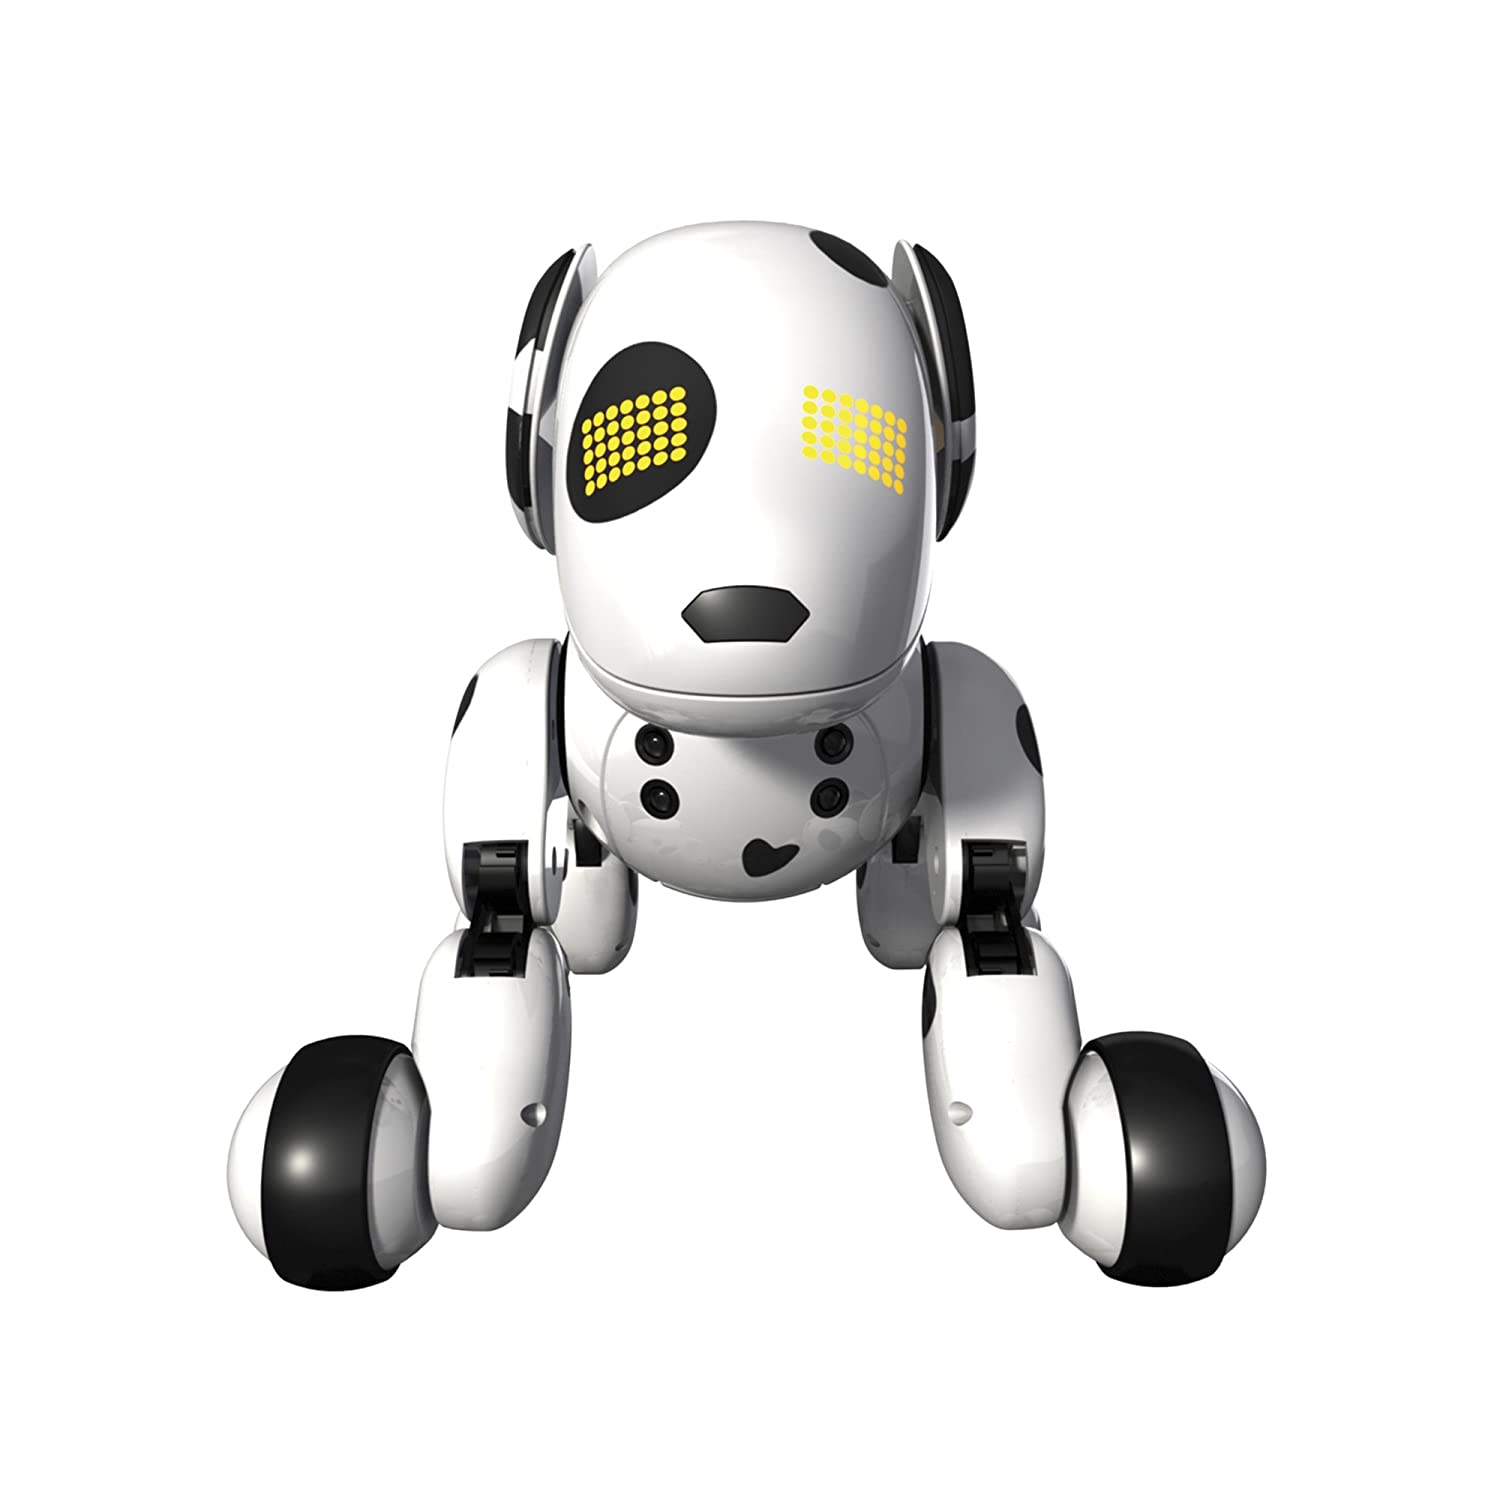 Top 9 Best Robot Pets for Kids Reviews in 2021 7